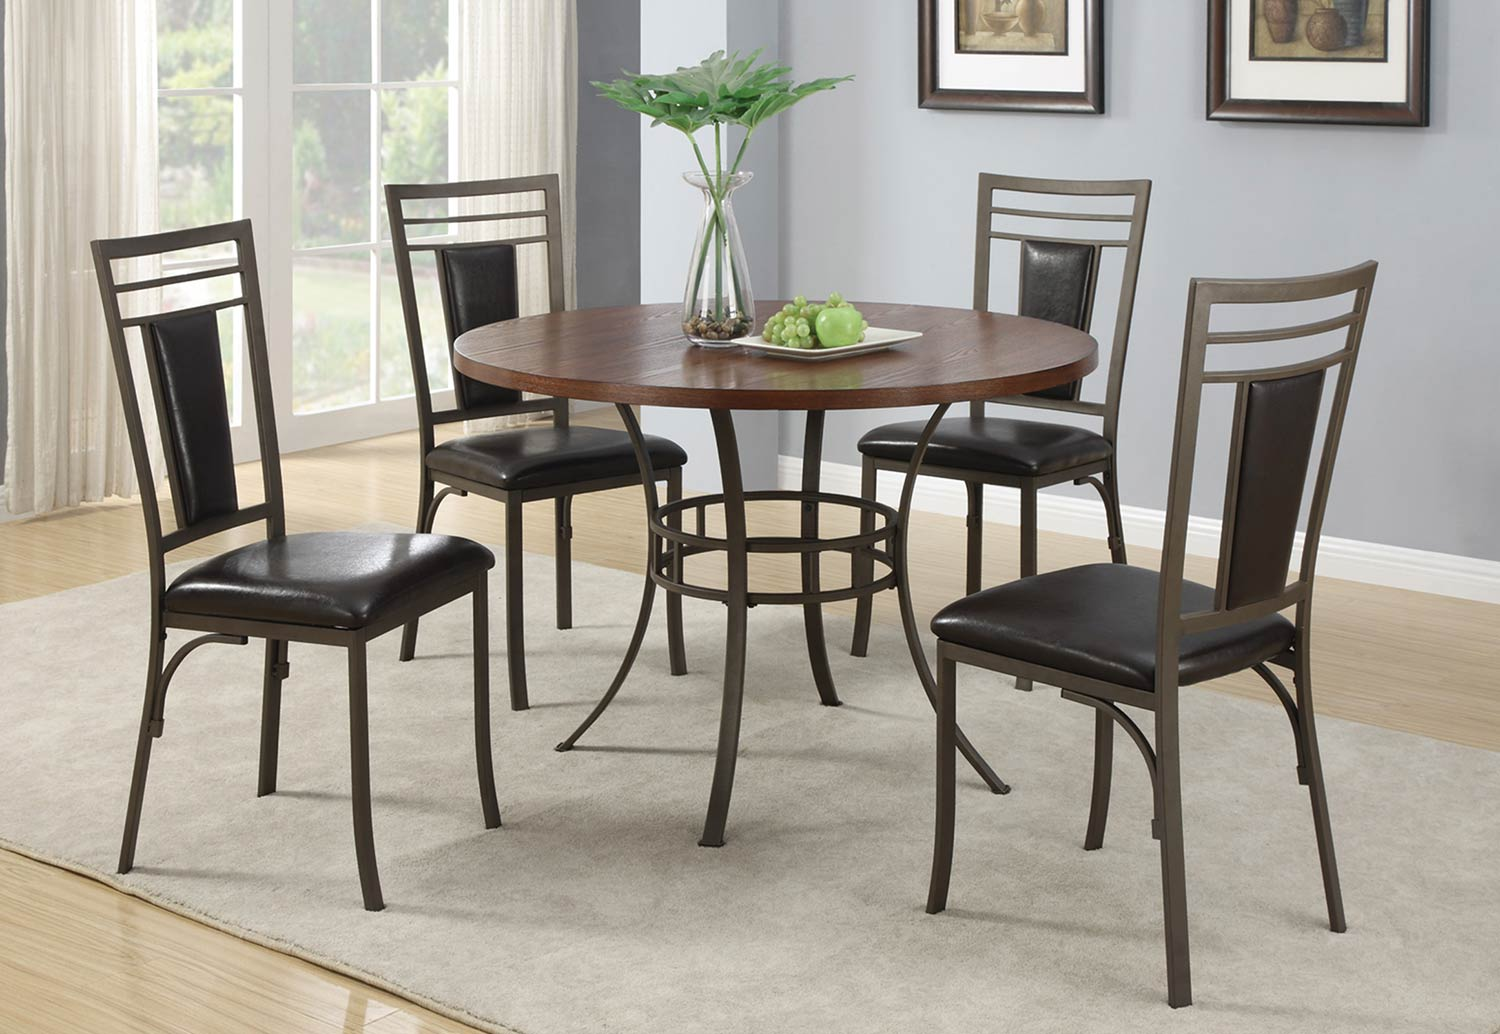 Coaster Dinettes 5 Piece Dining Set - Cherry/Metal